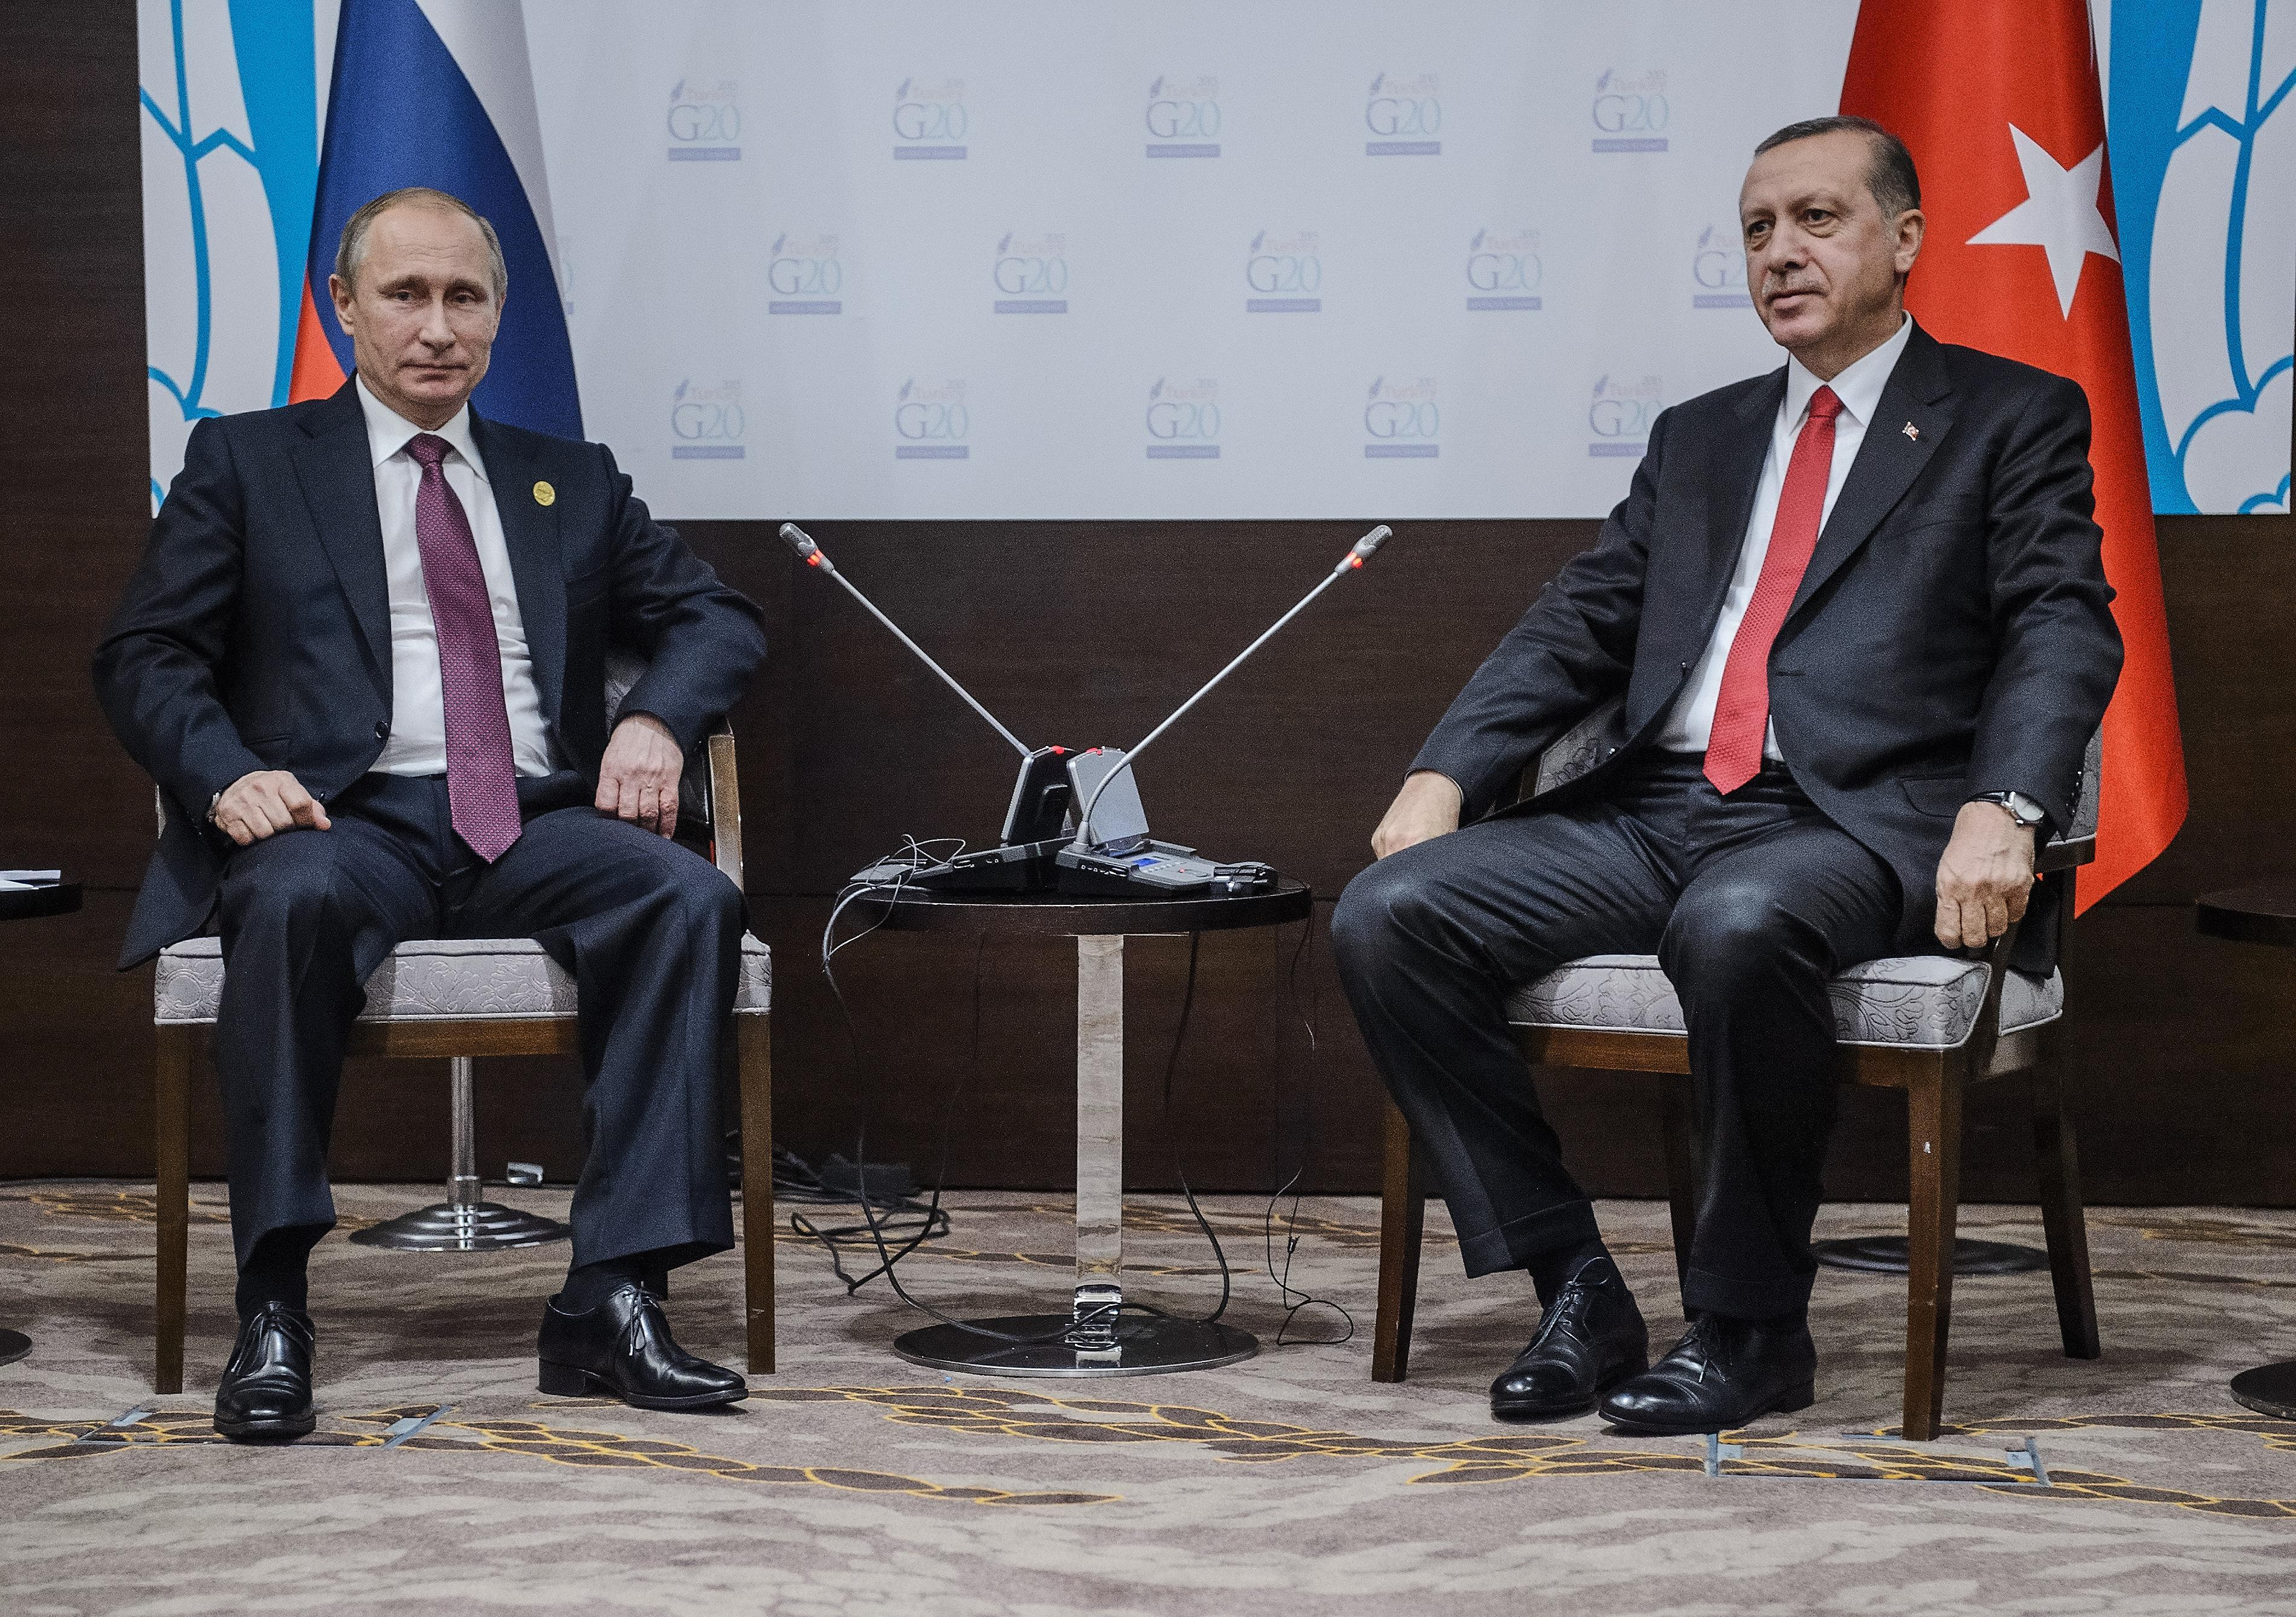 Turkish President Apologizes to Putin for Downing of Russian Military Jet